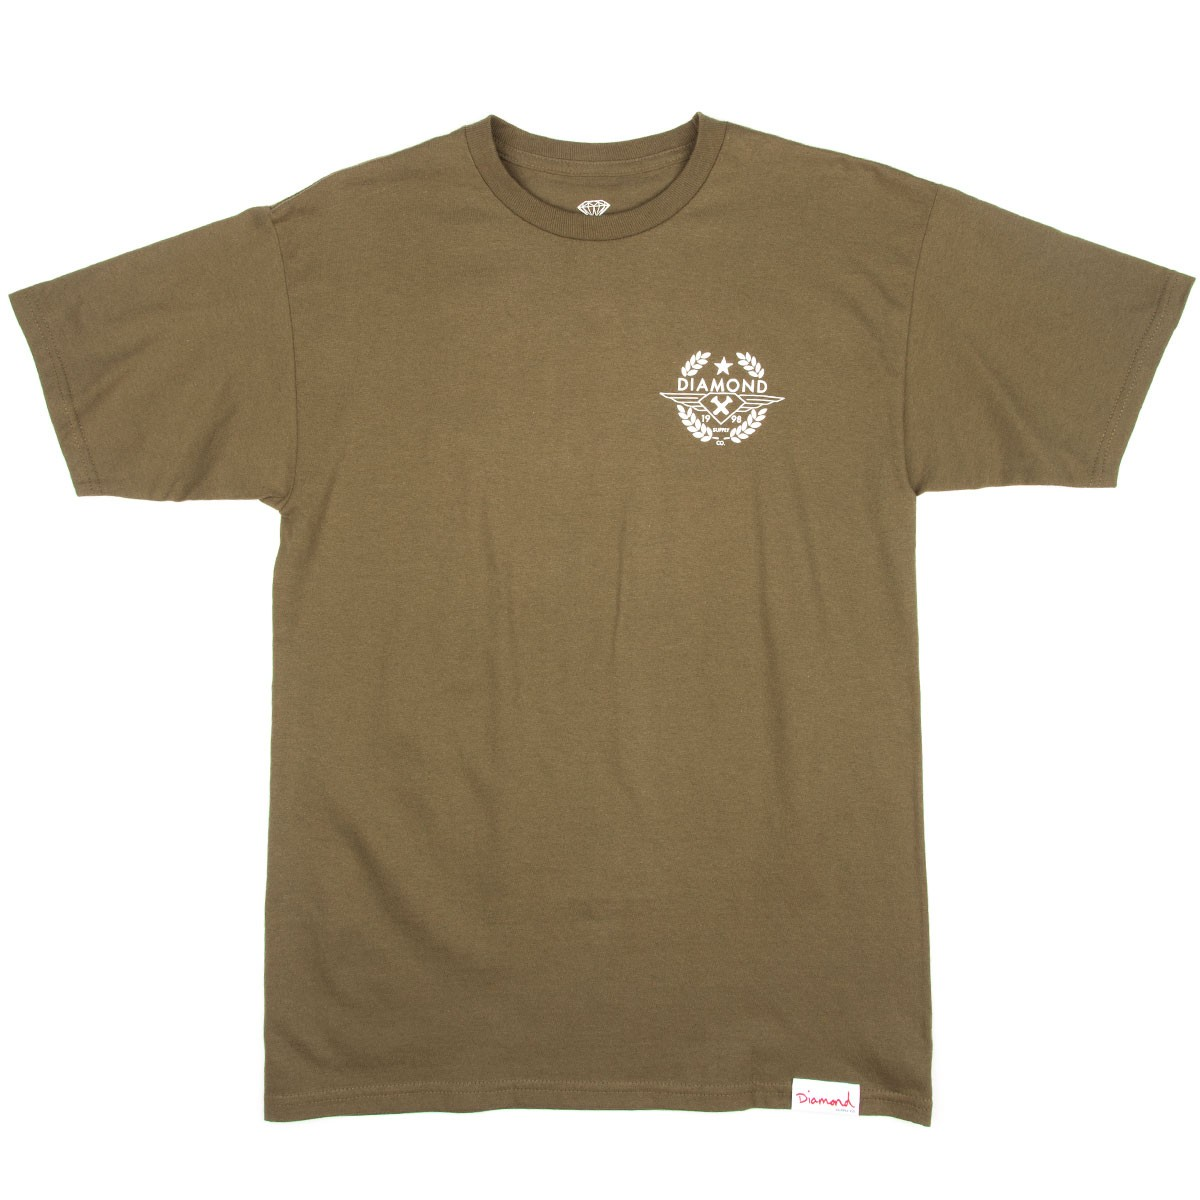 Diamond Supply Co. Shine Crest T-Shirt - Military Green